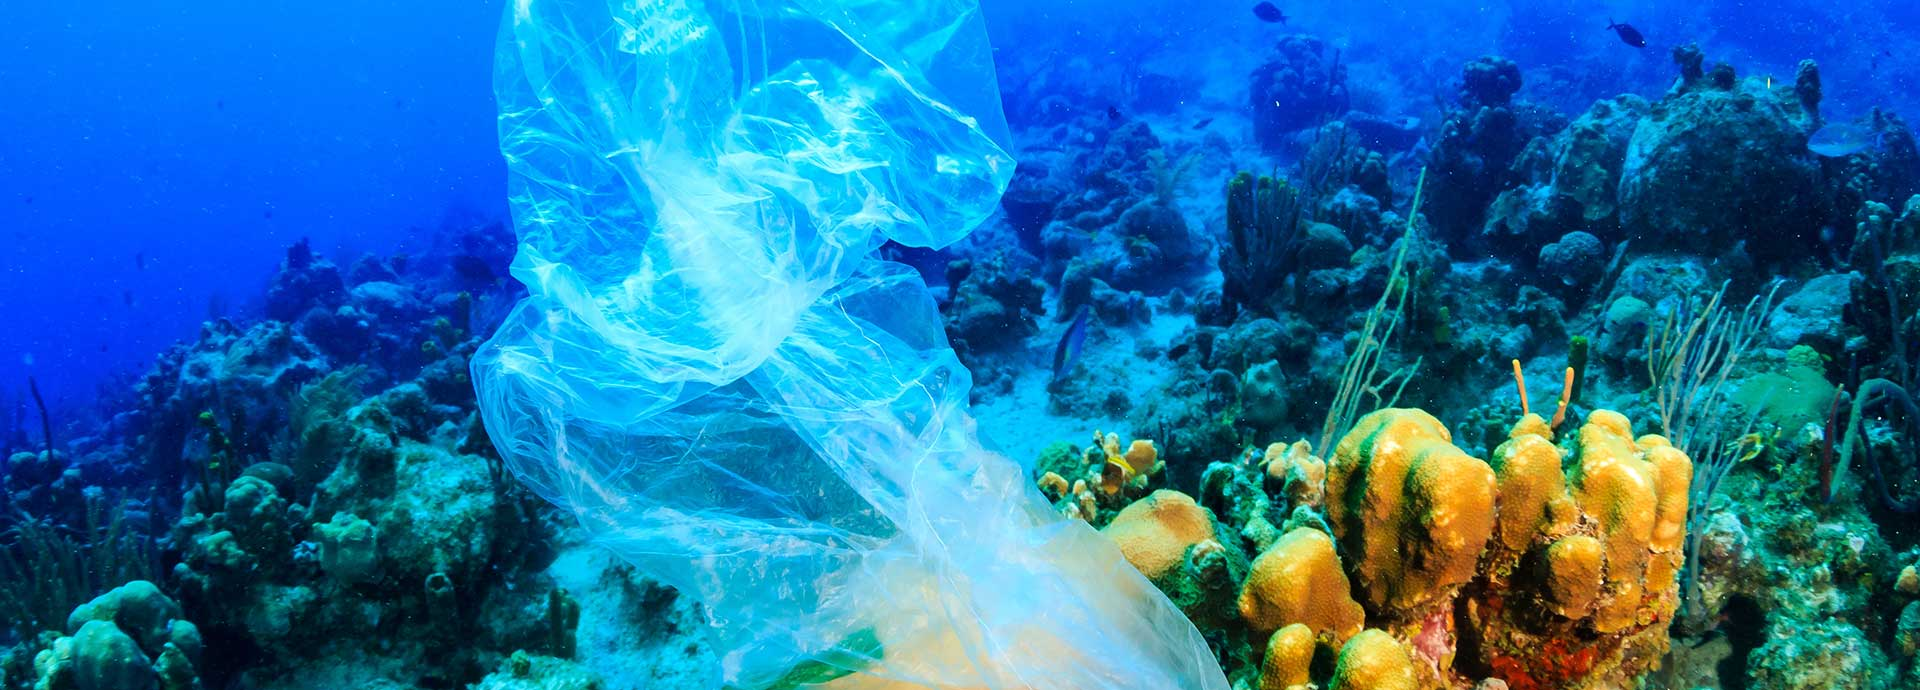 5 ways to tackle plastic waste